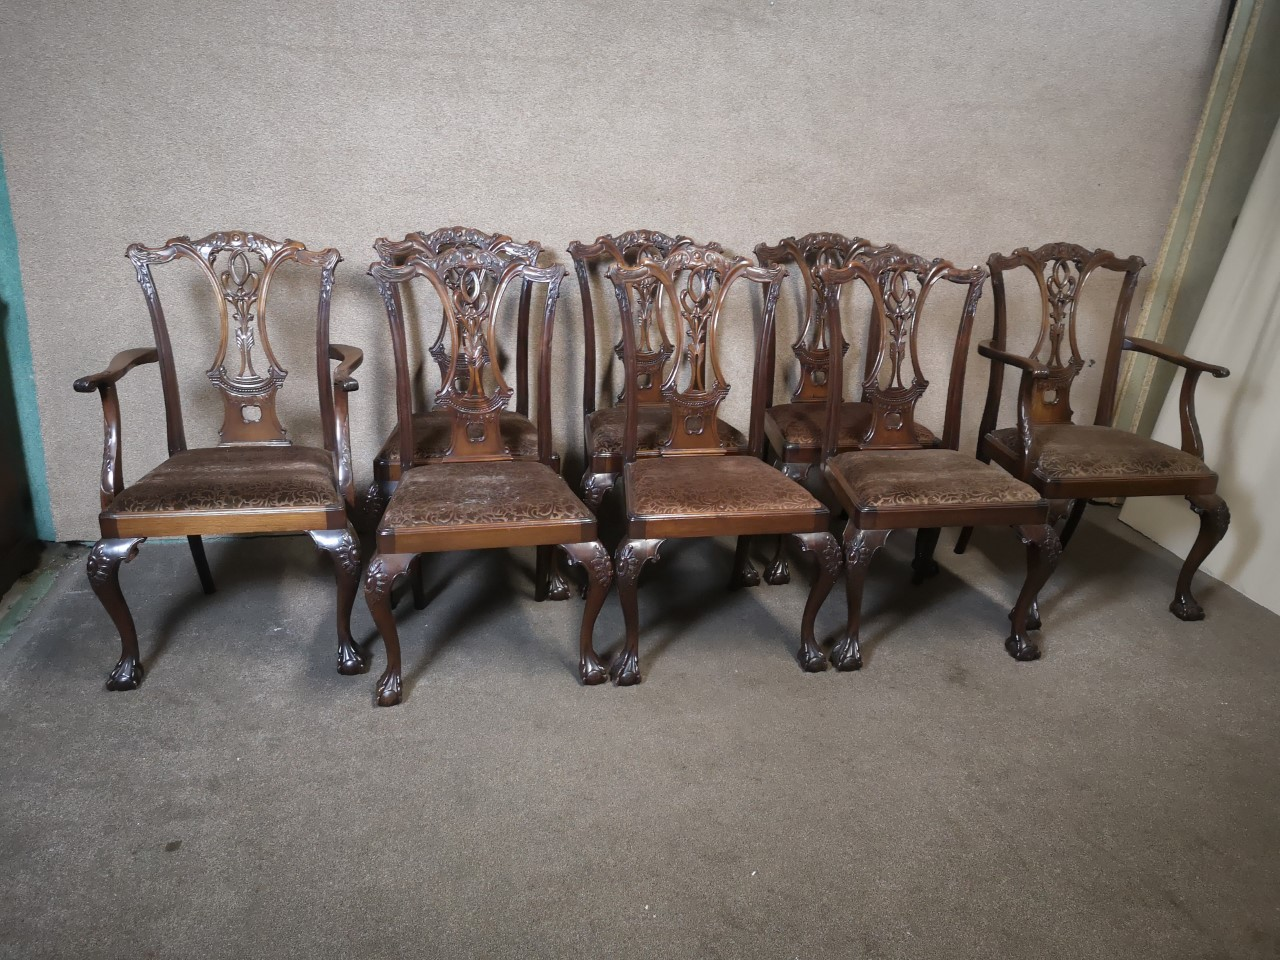 Chippendale table and chairs(8 chairs)画像